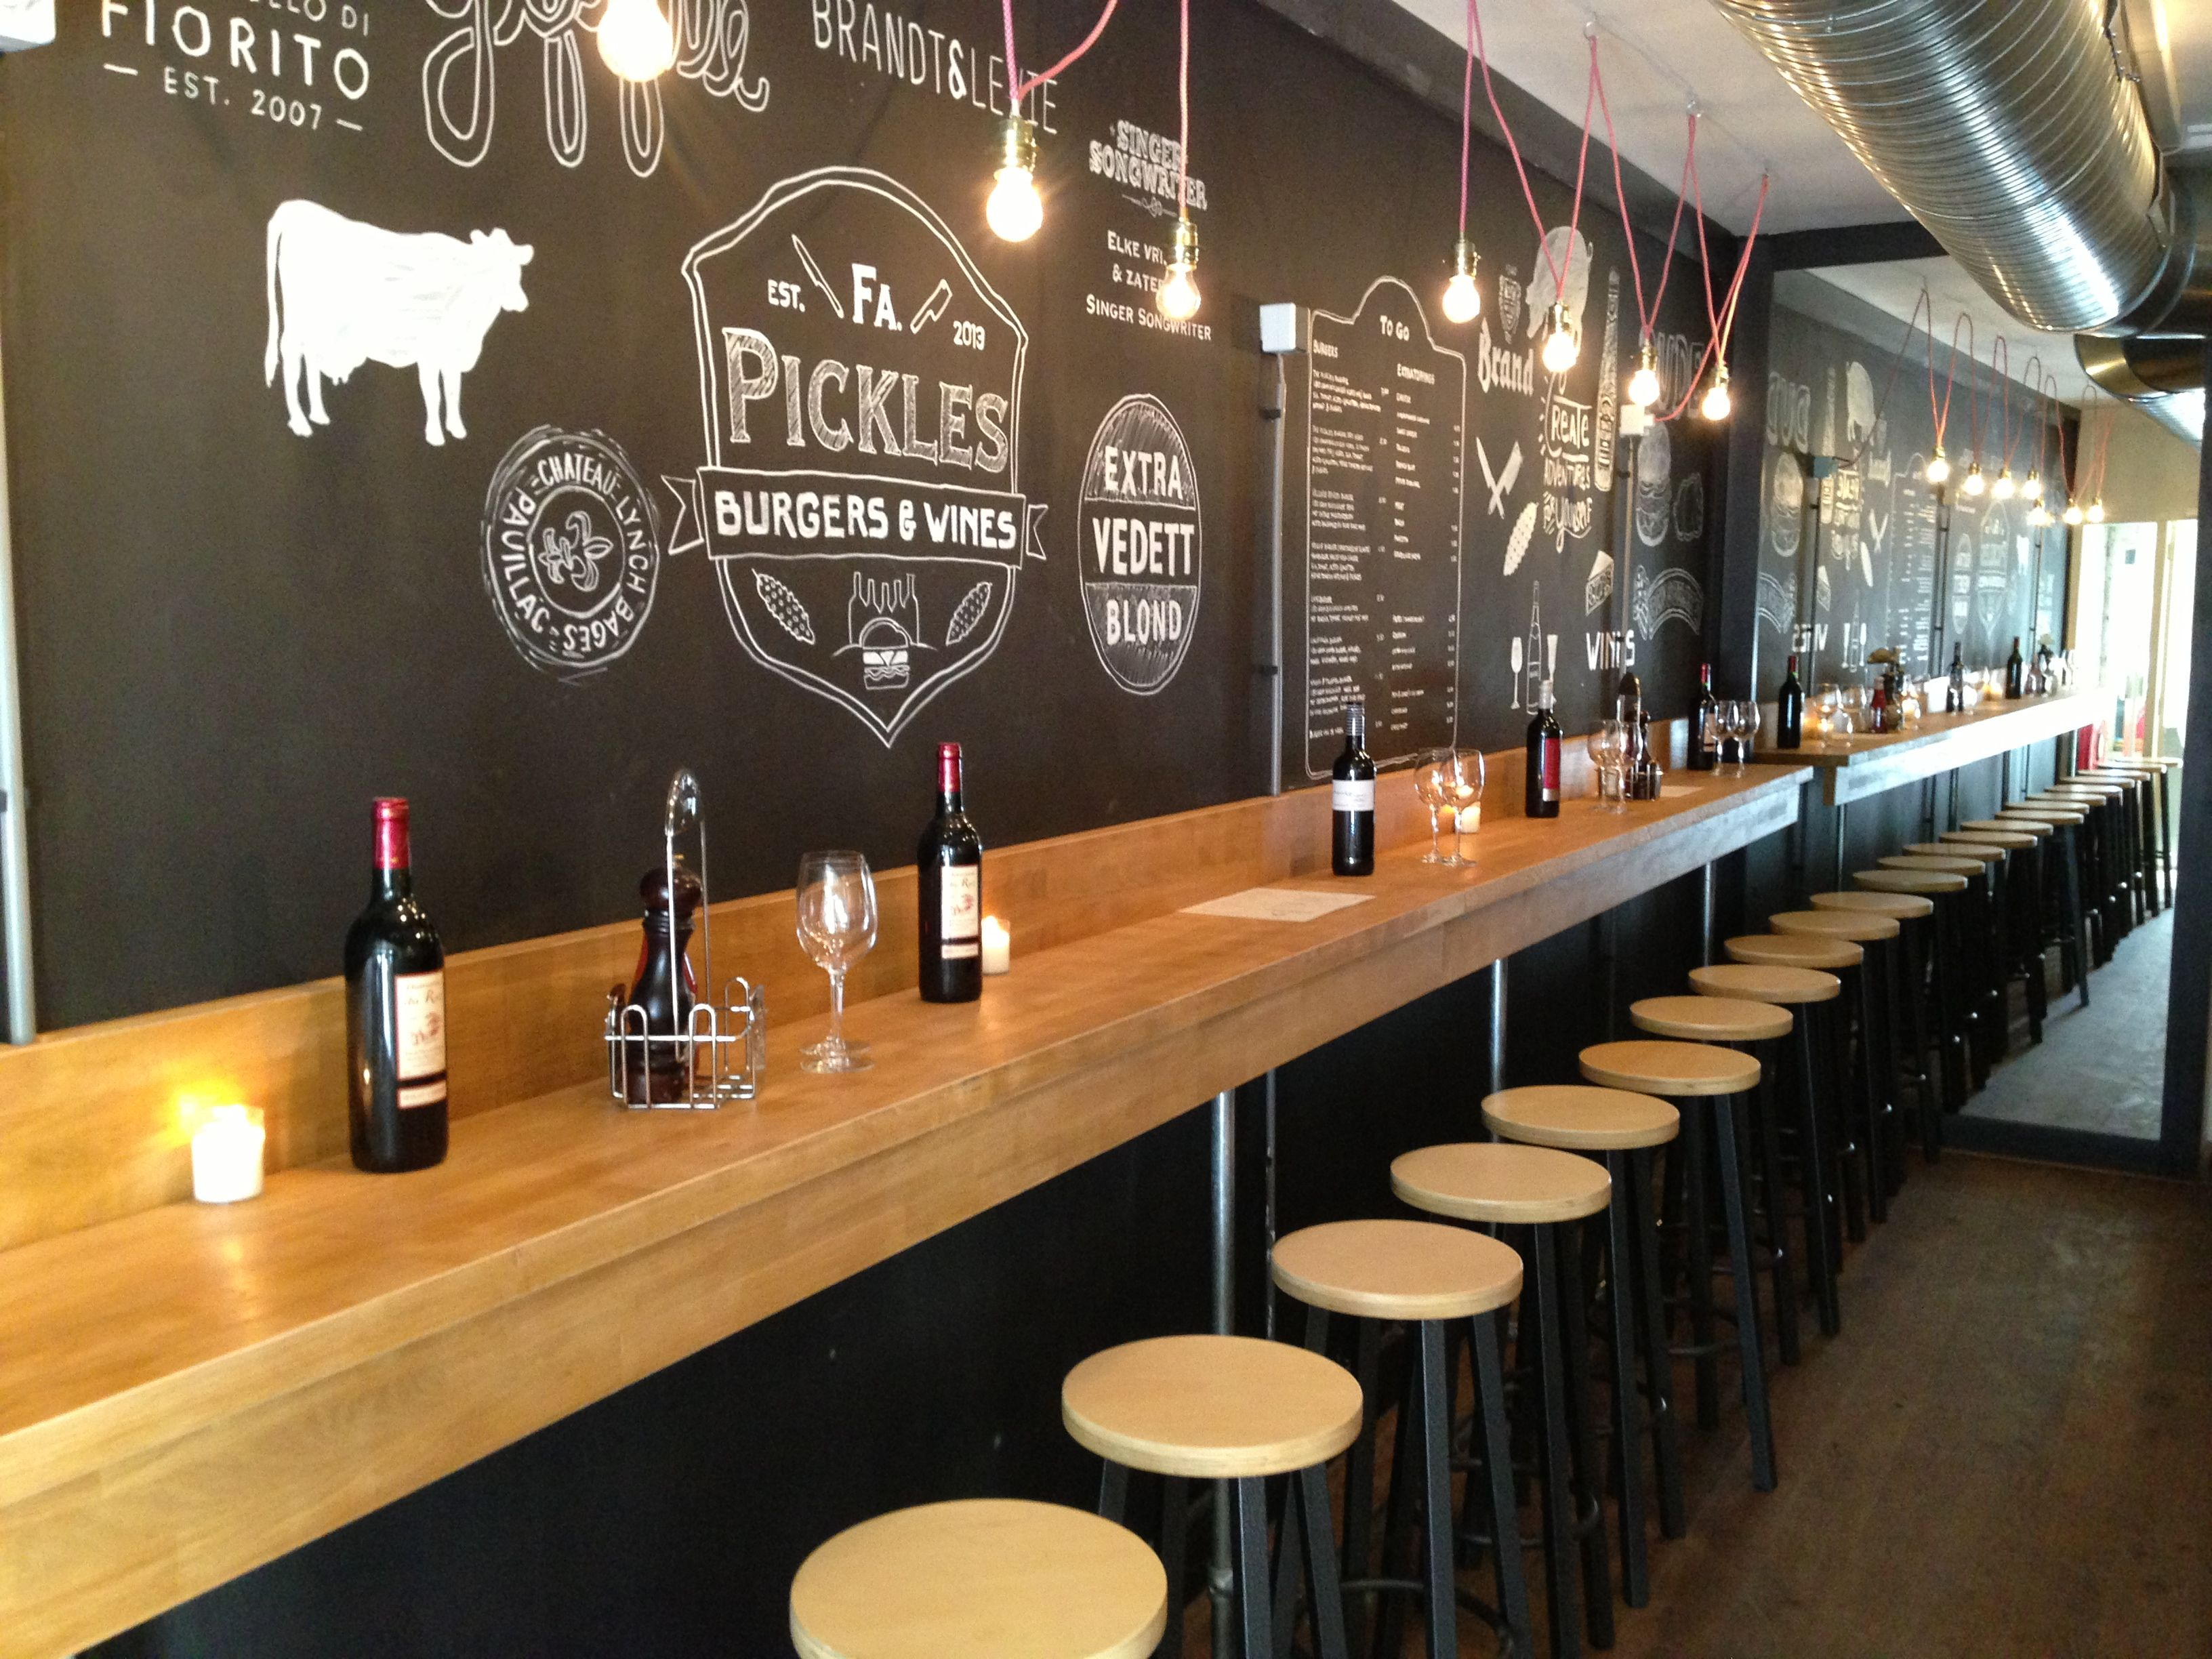 Firma pickles burgers wines restaurant utrecht Wine shop decoration